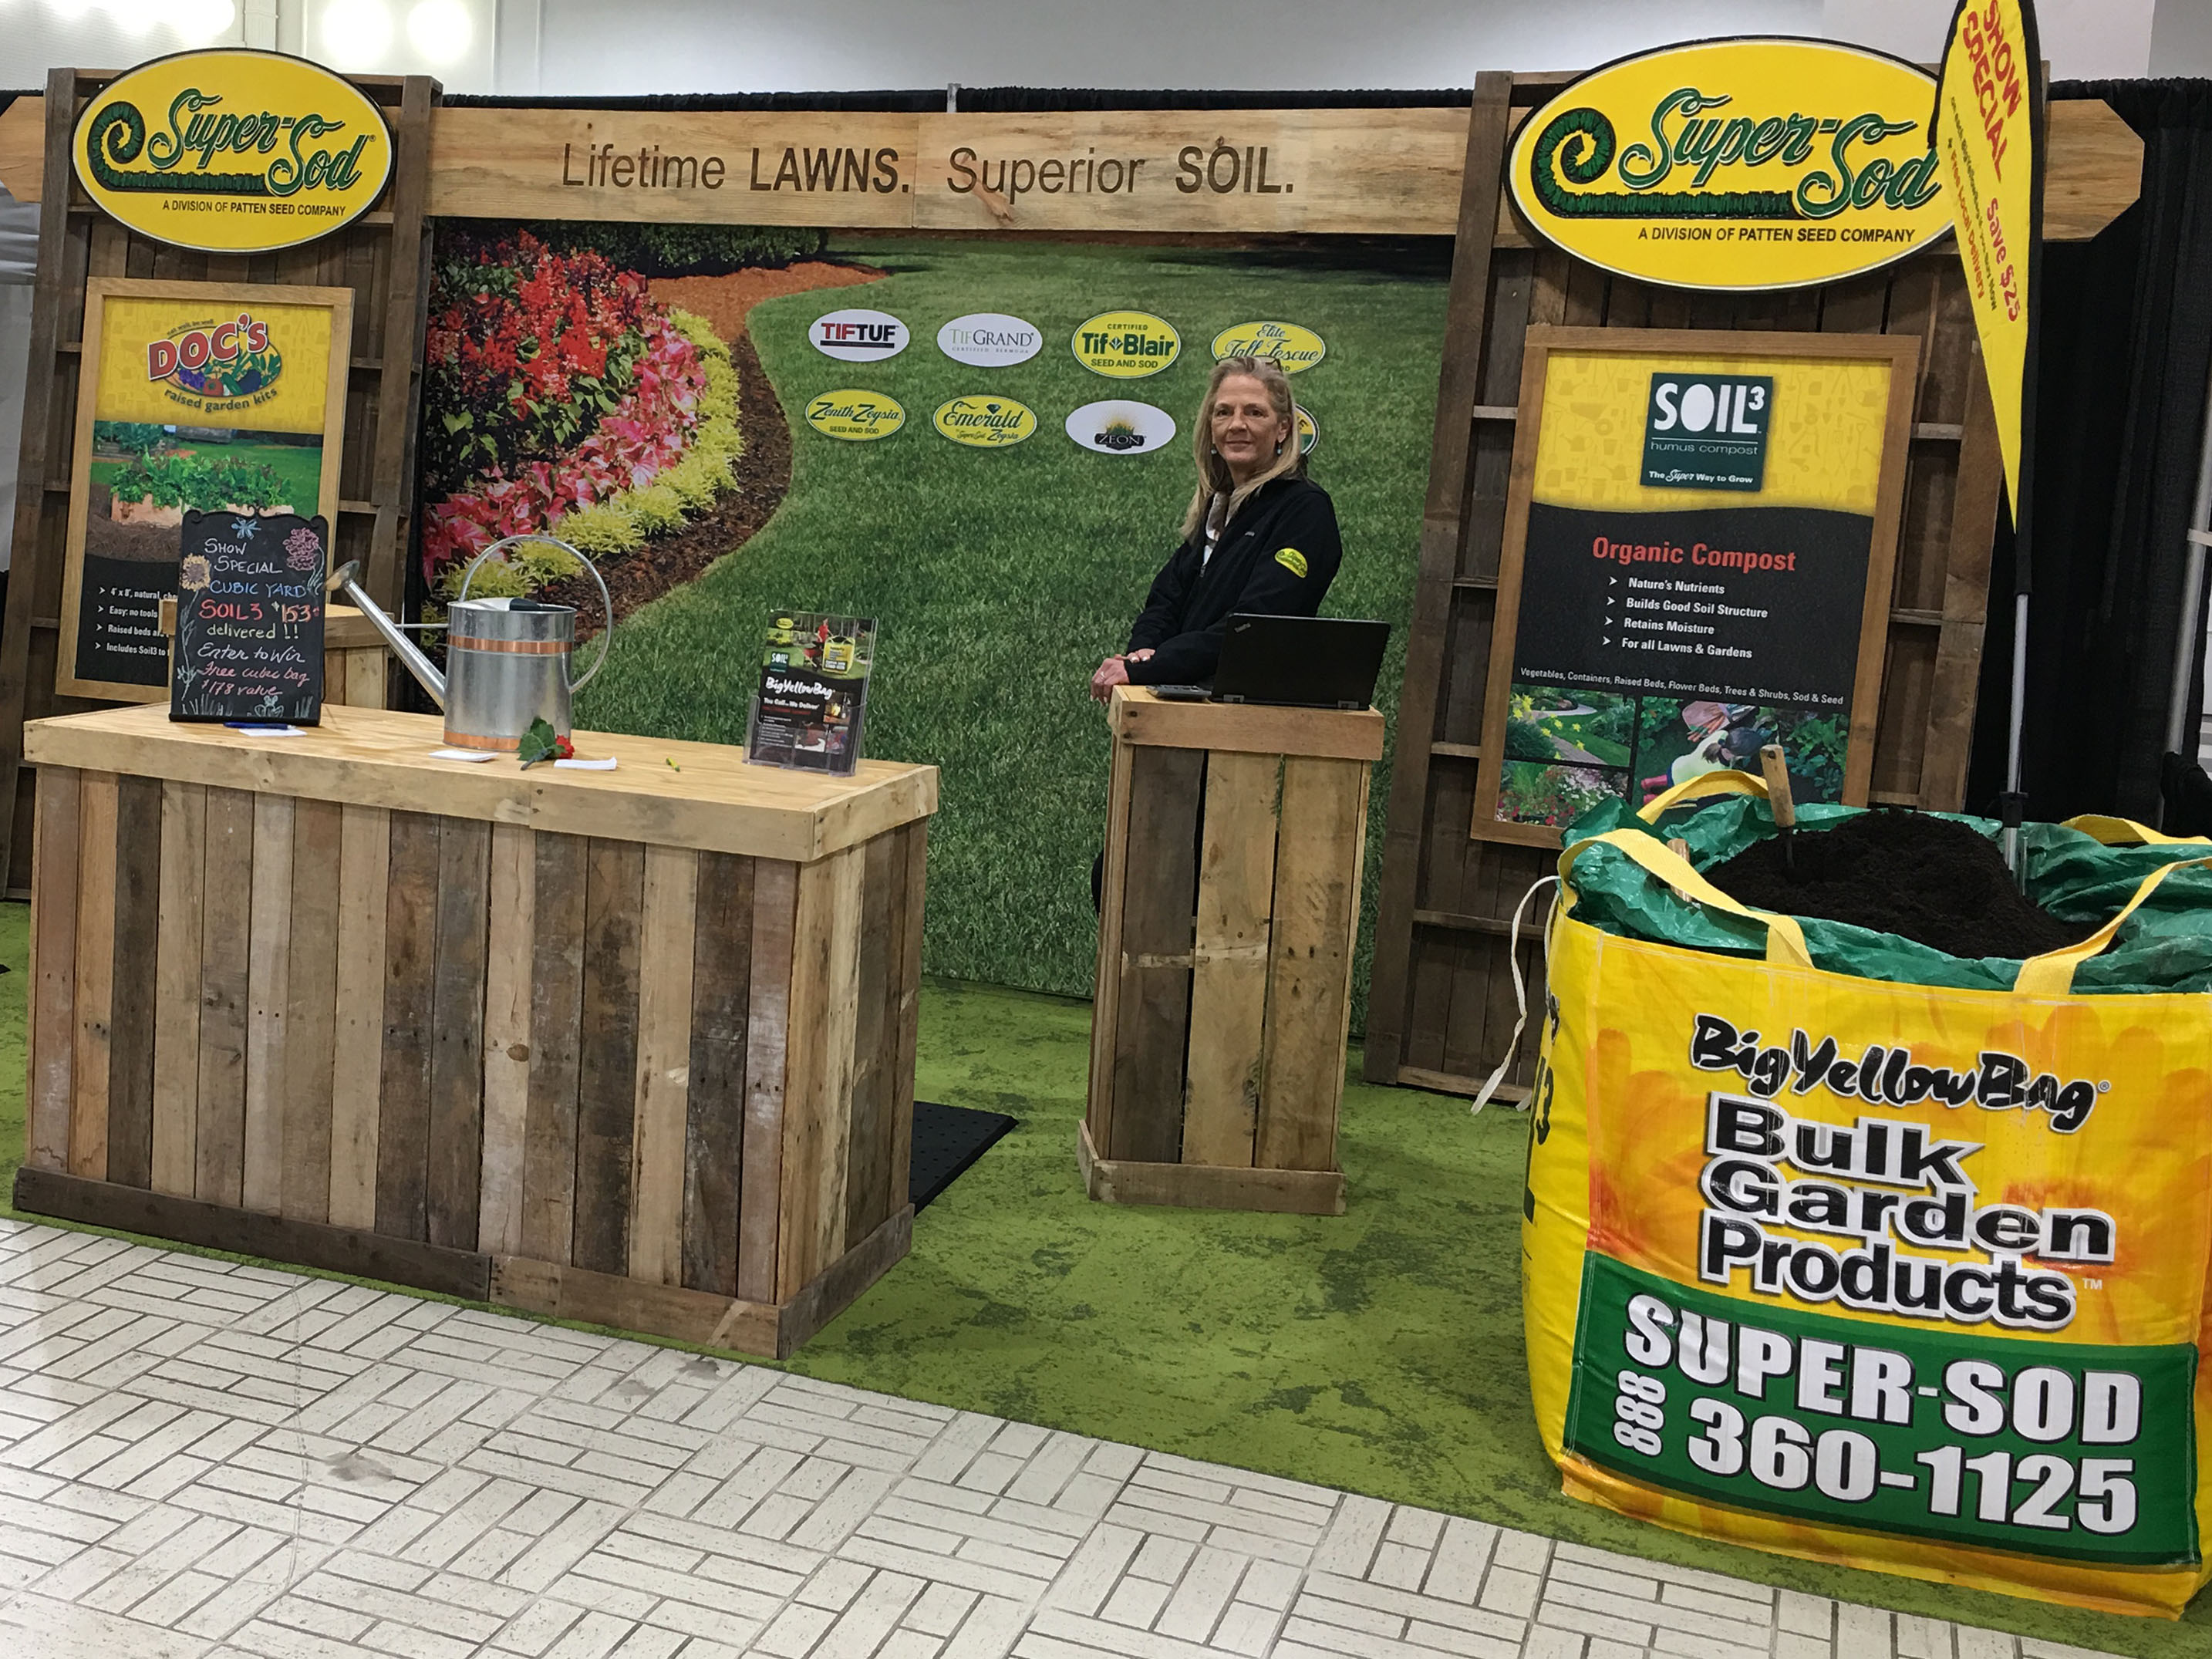 Super-Sod to Attend Athens Home Show with Stylish New Booth